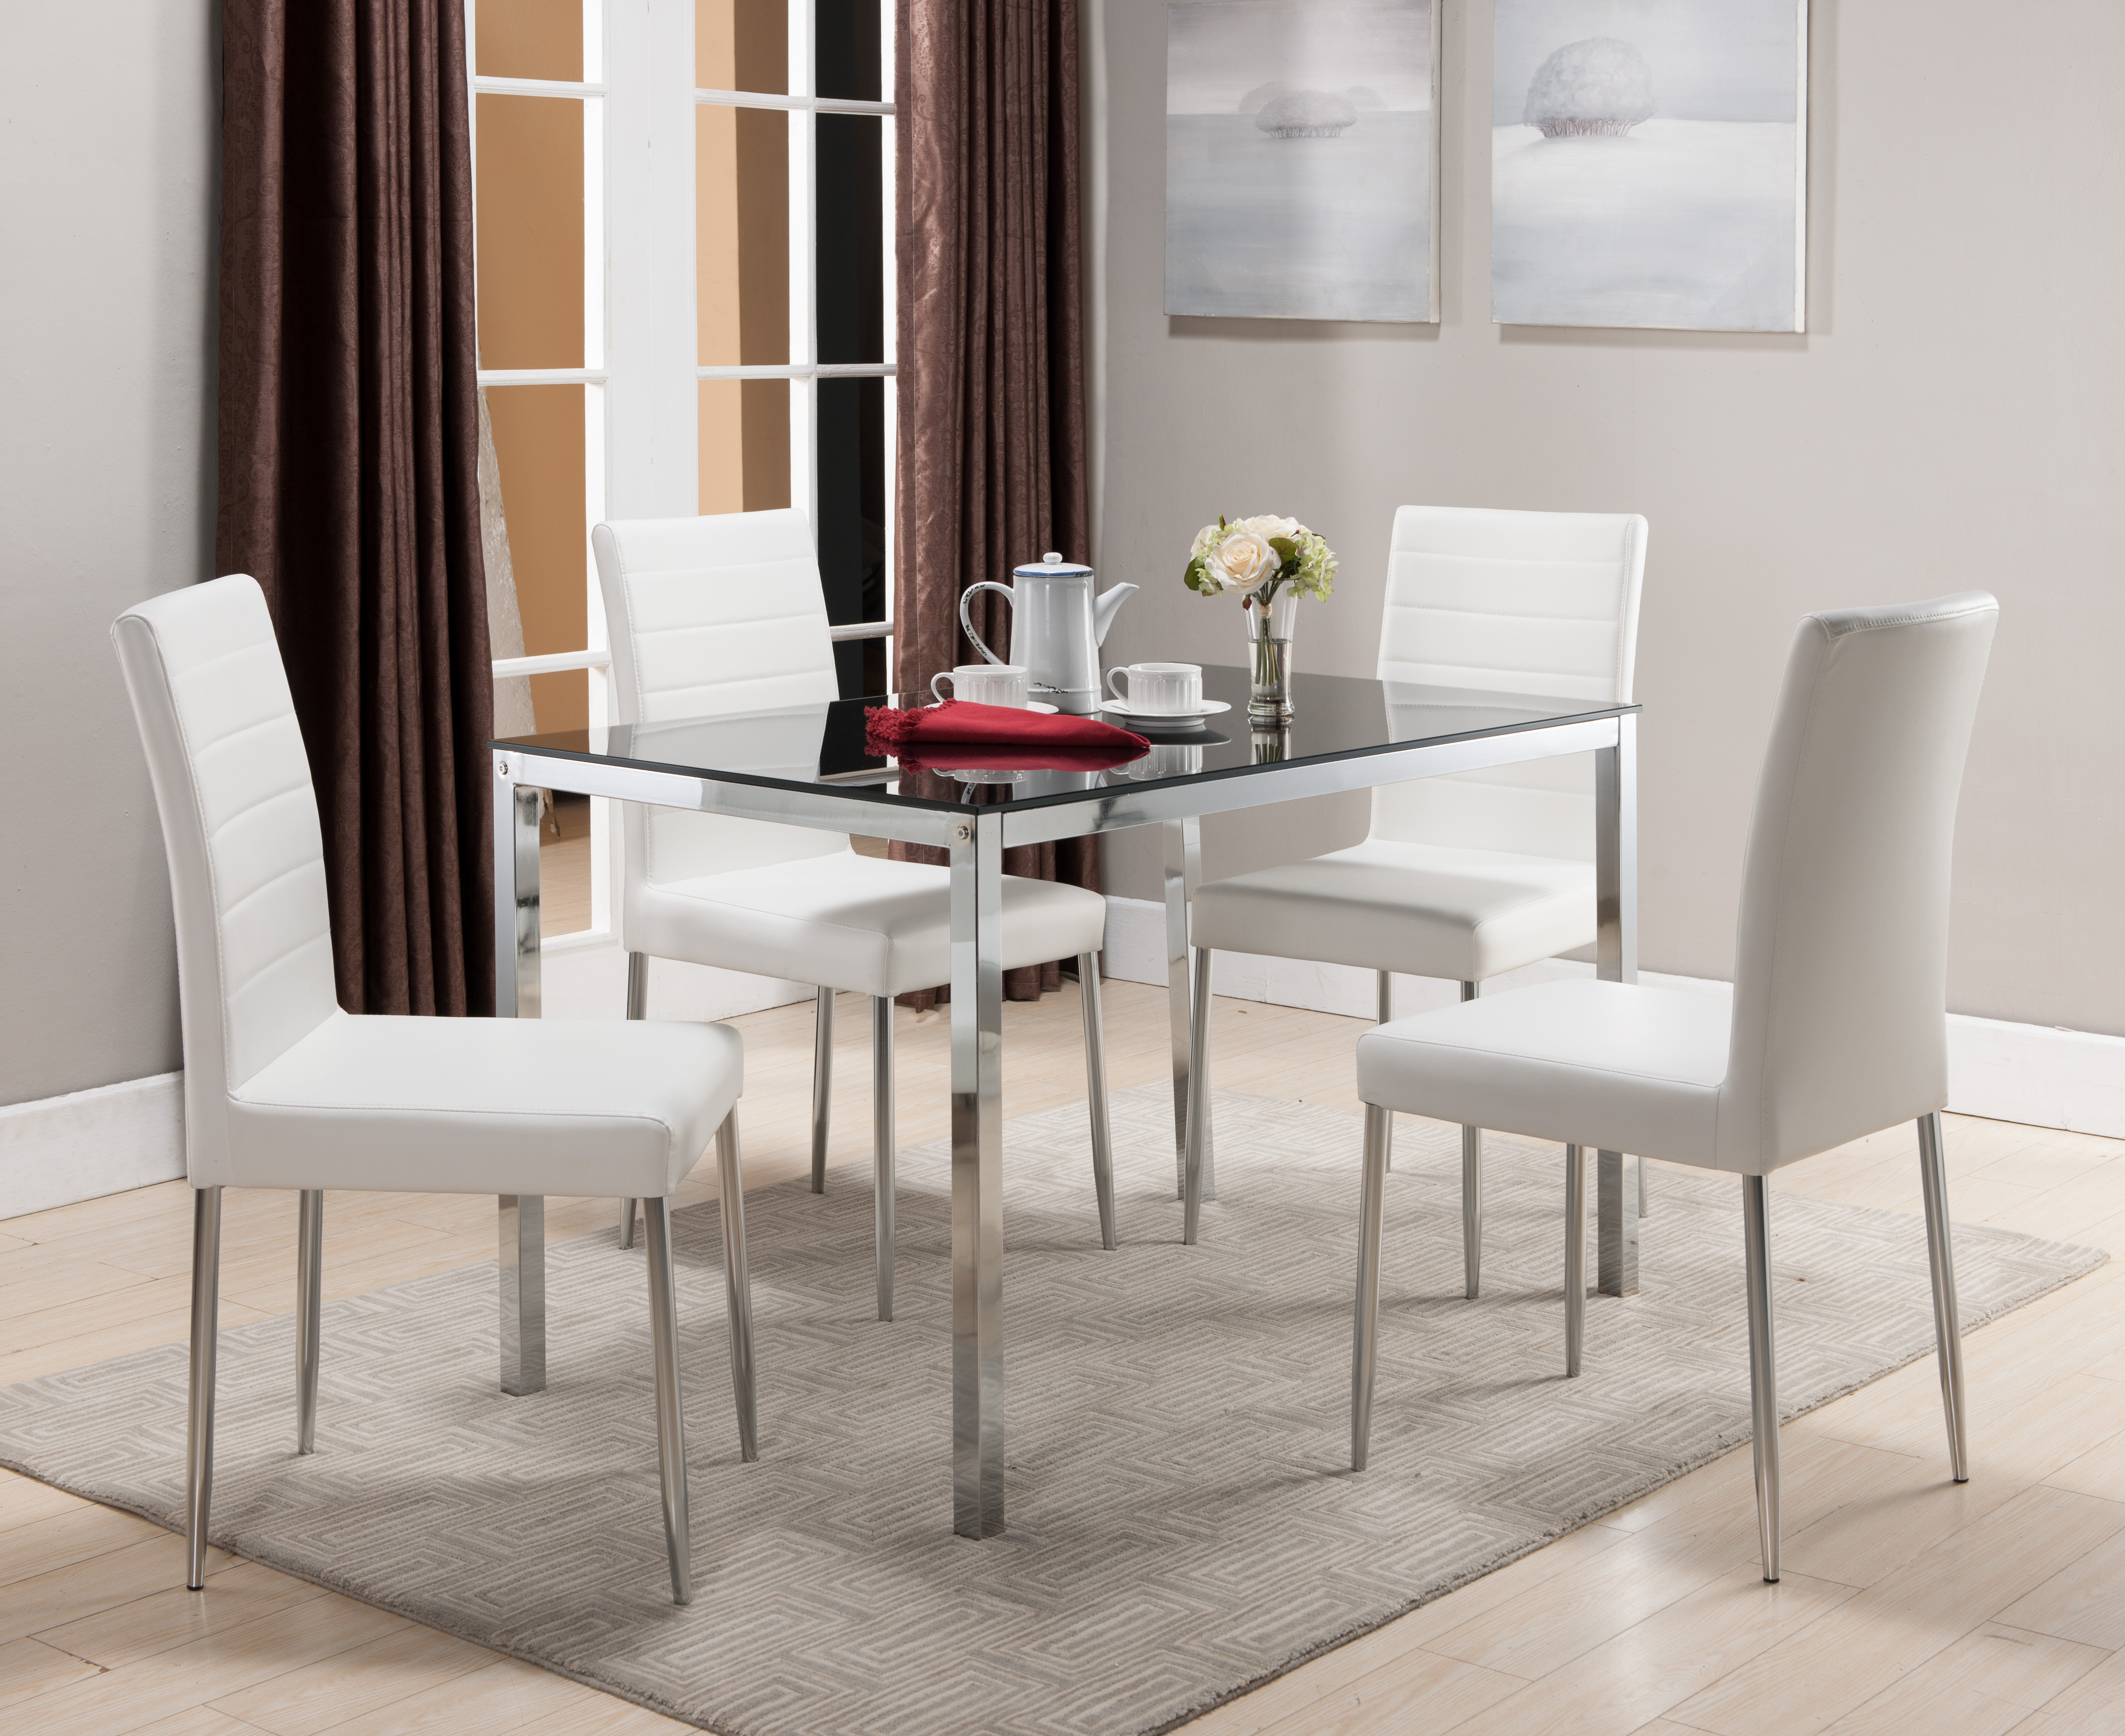 Buy Leina 5 Piece Kitchen Dining Set Chrome Metal Frame Black Tempered Glass Top Modern 48 Rectangular Table 4 White Parsons Chairs Online In Taiwan 172294225